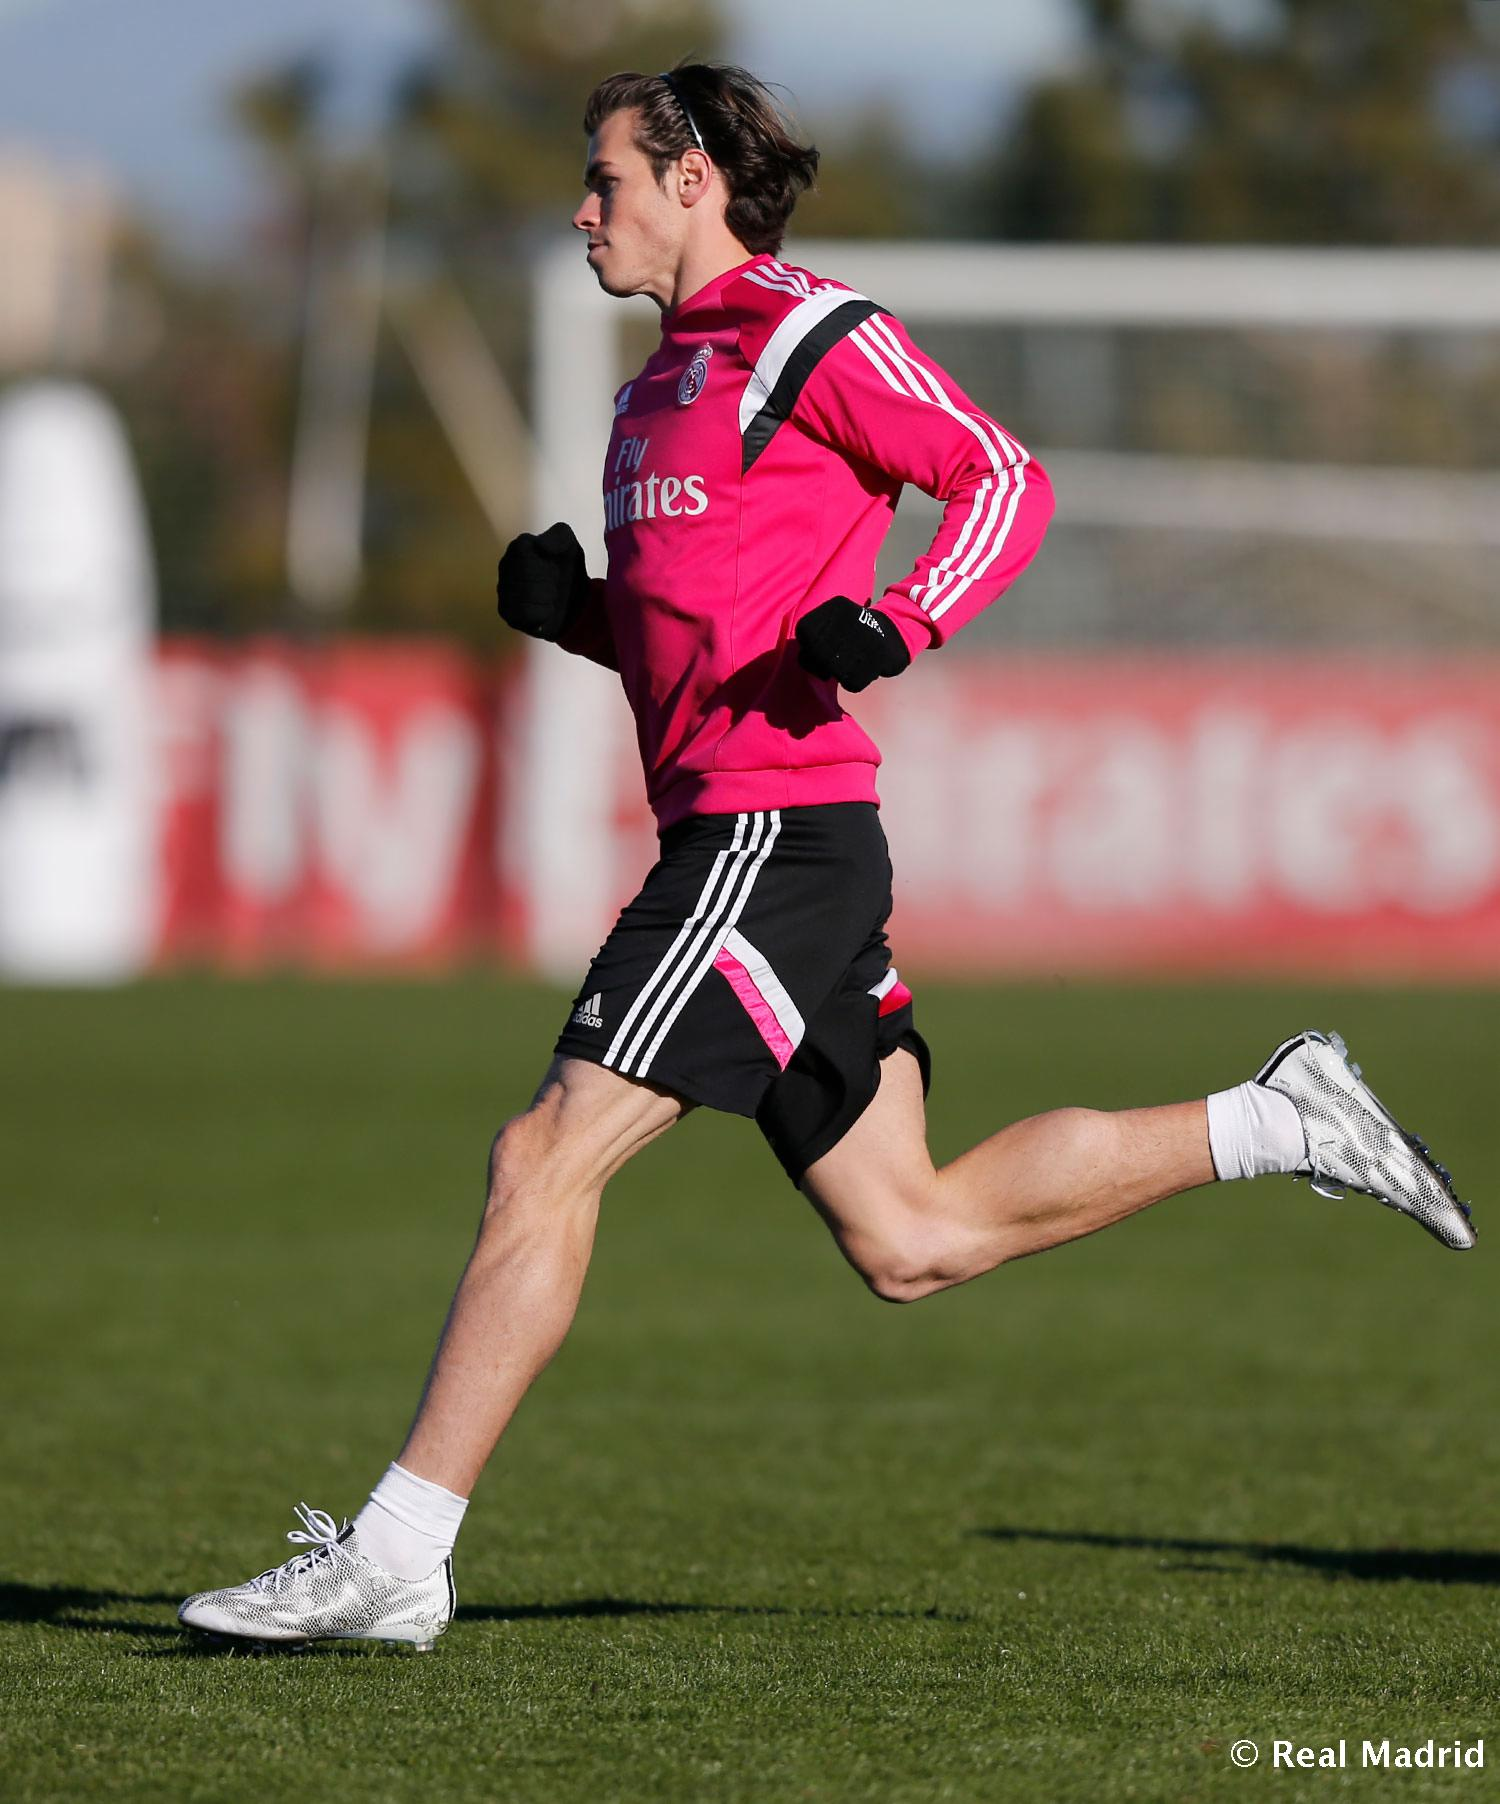 Real Madrid - Entrenamiento del Real Madrid - 09-01-2015